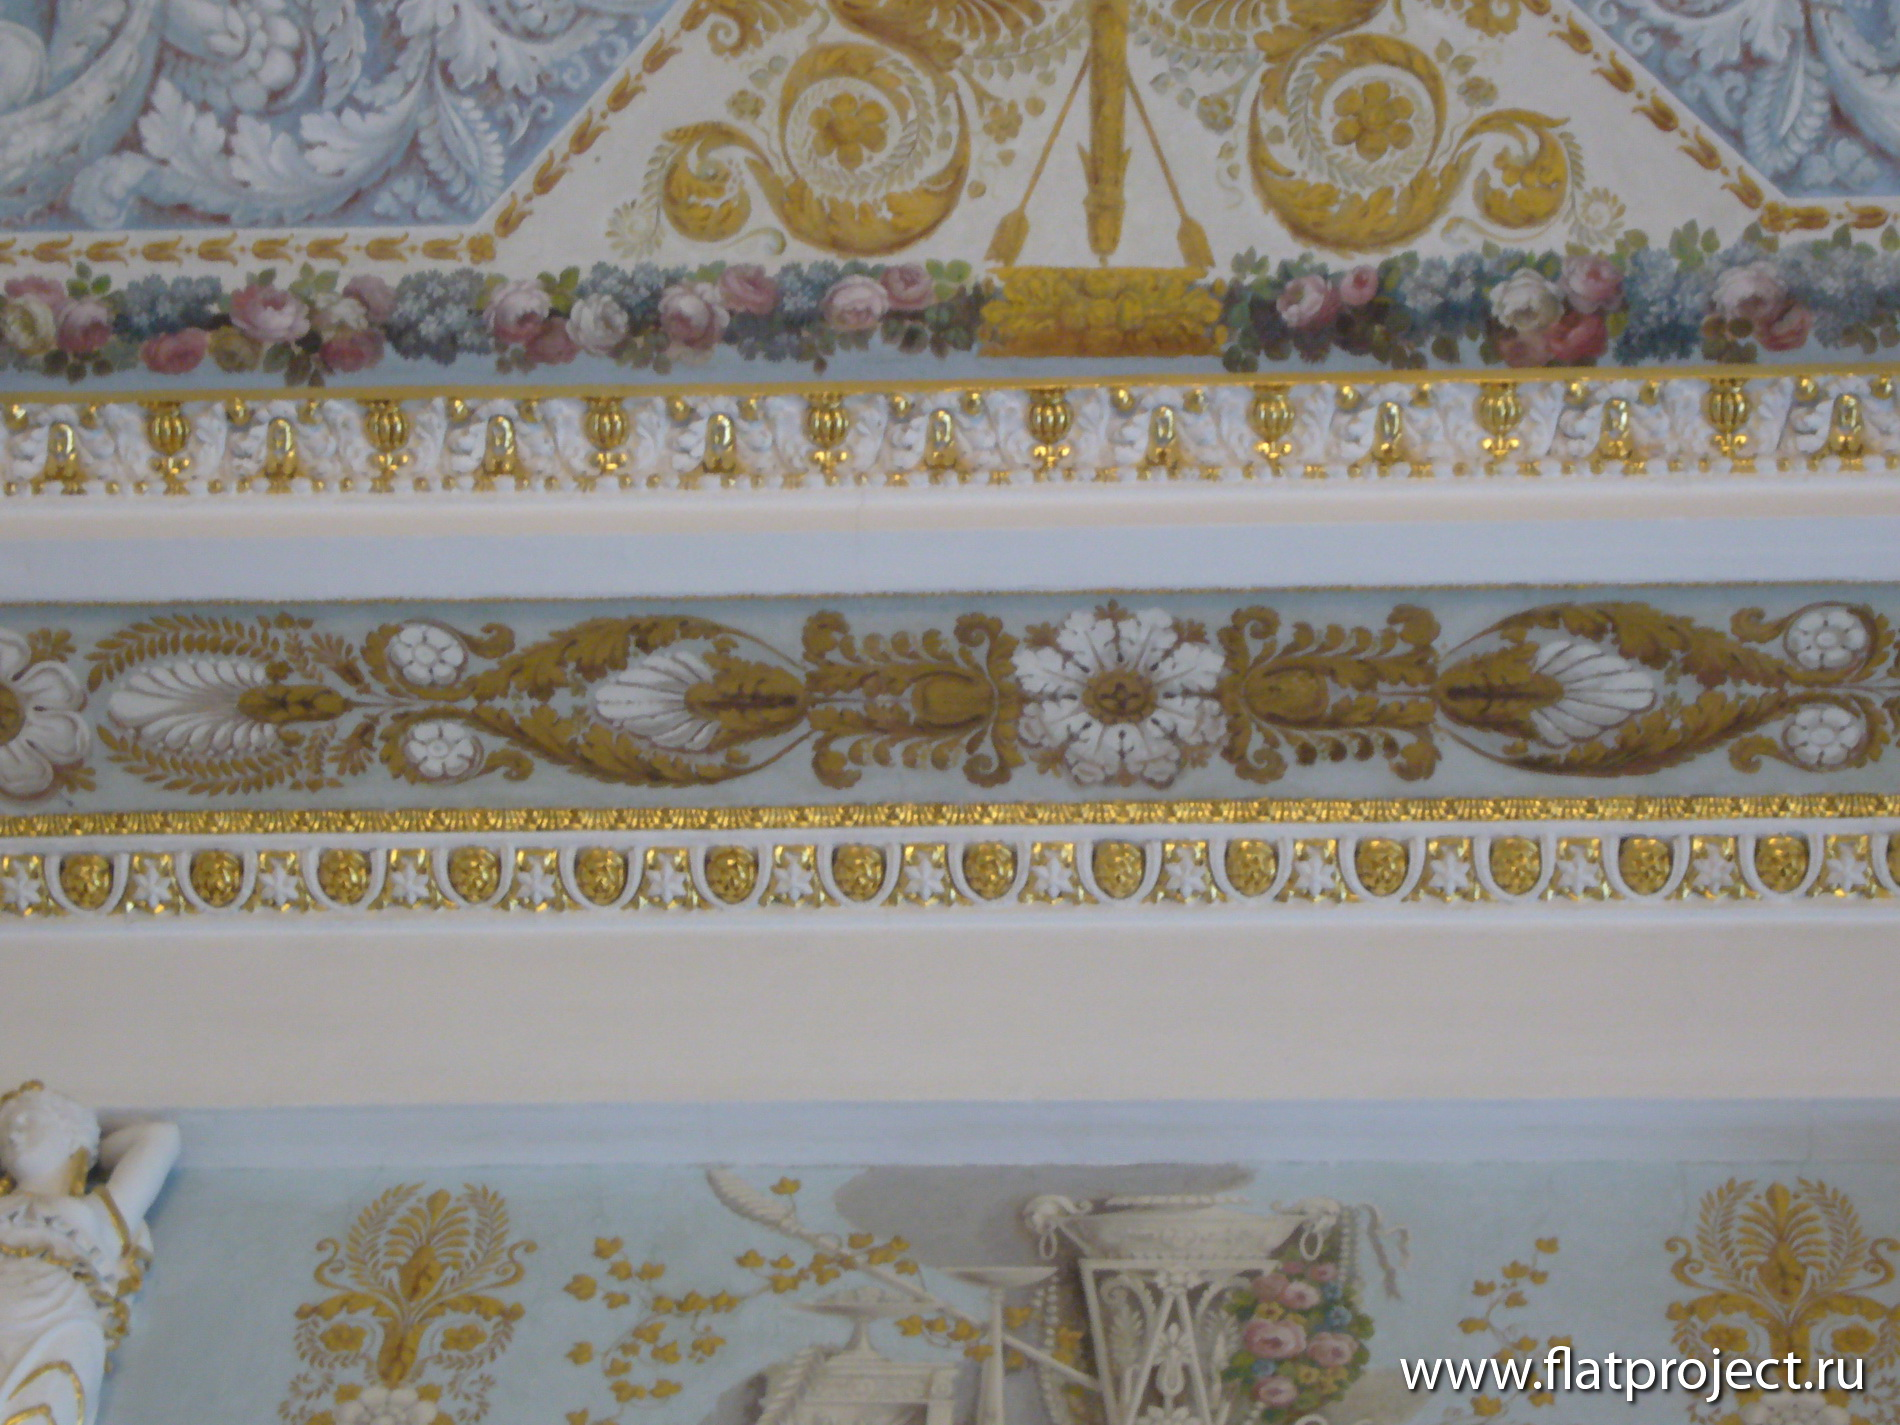 The State Russian museum interiors – photo 7